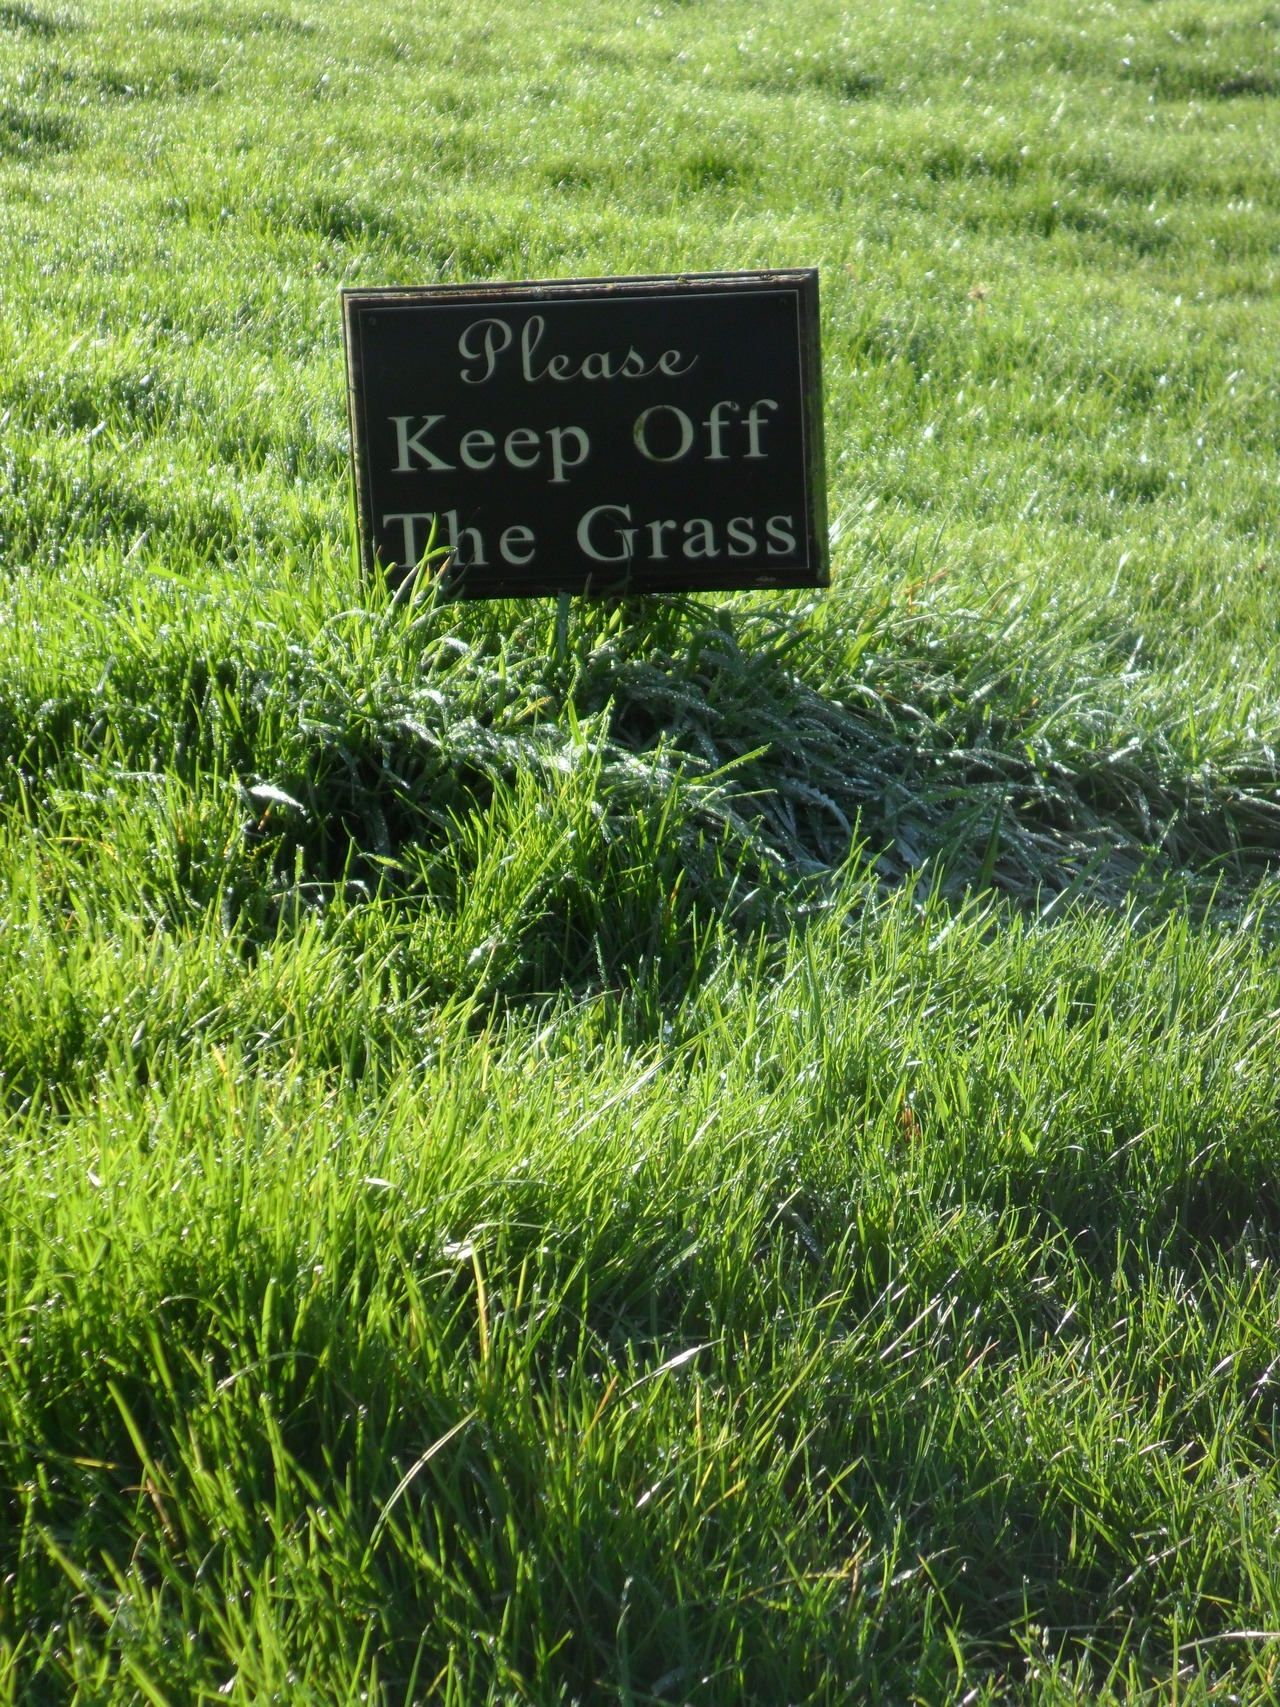 Please Keep off the Grass - *man* - Long Birch Farm, Brewood, Staffordshire